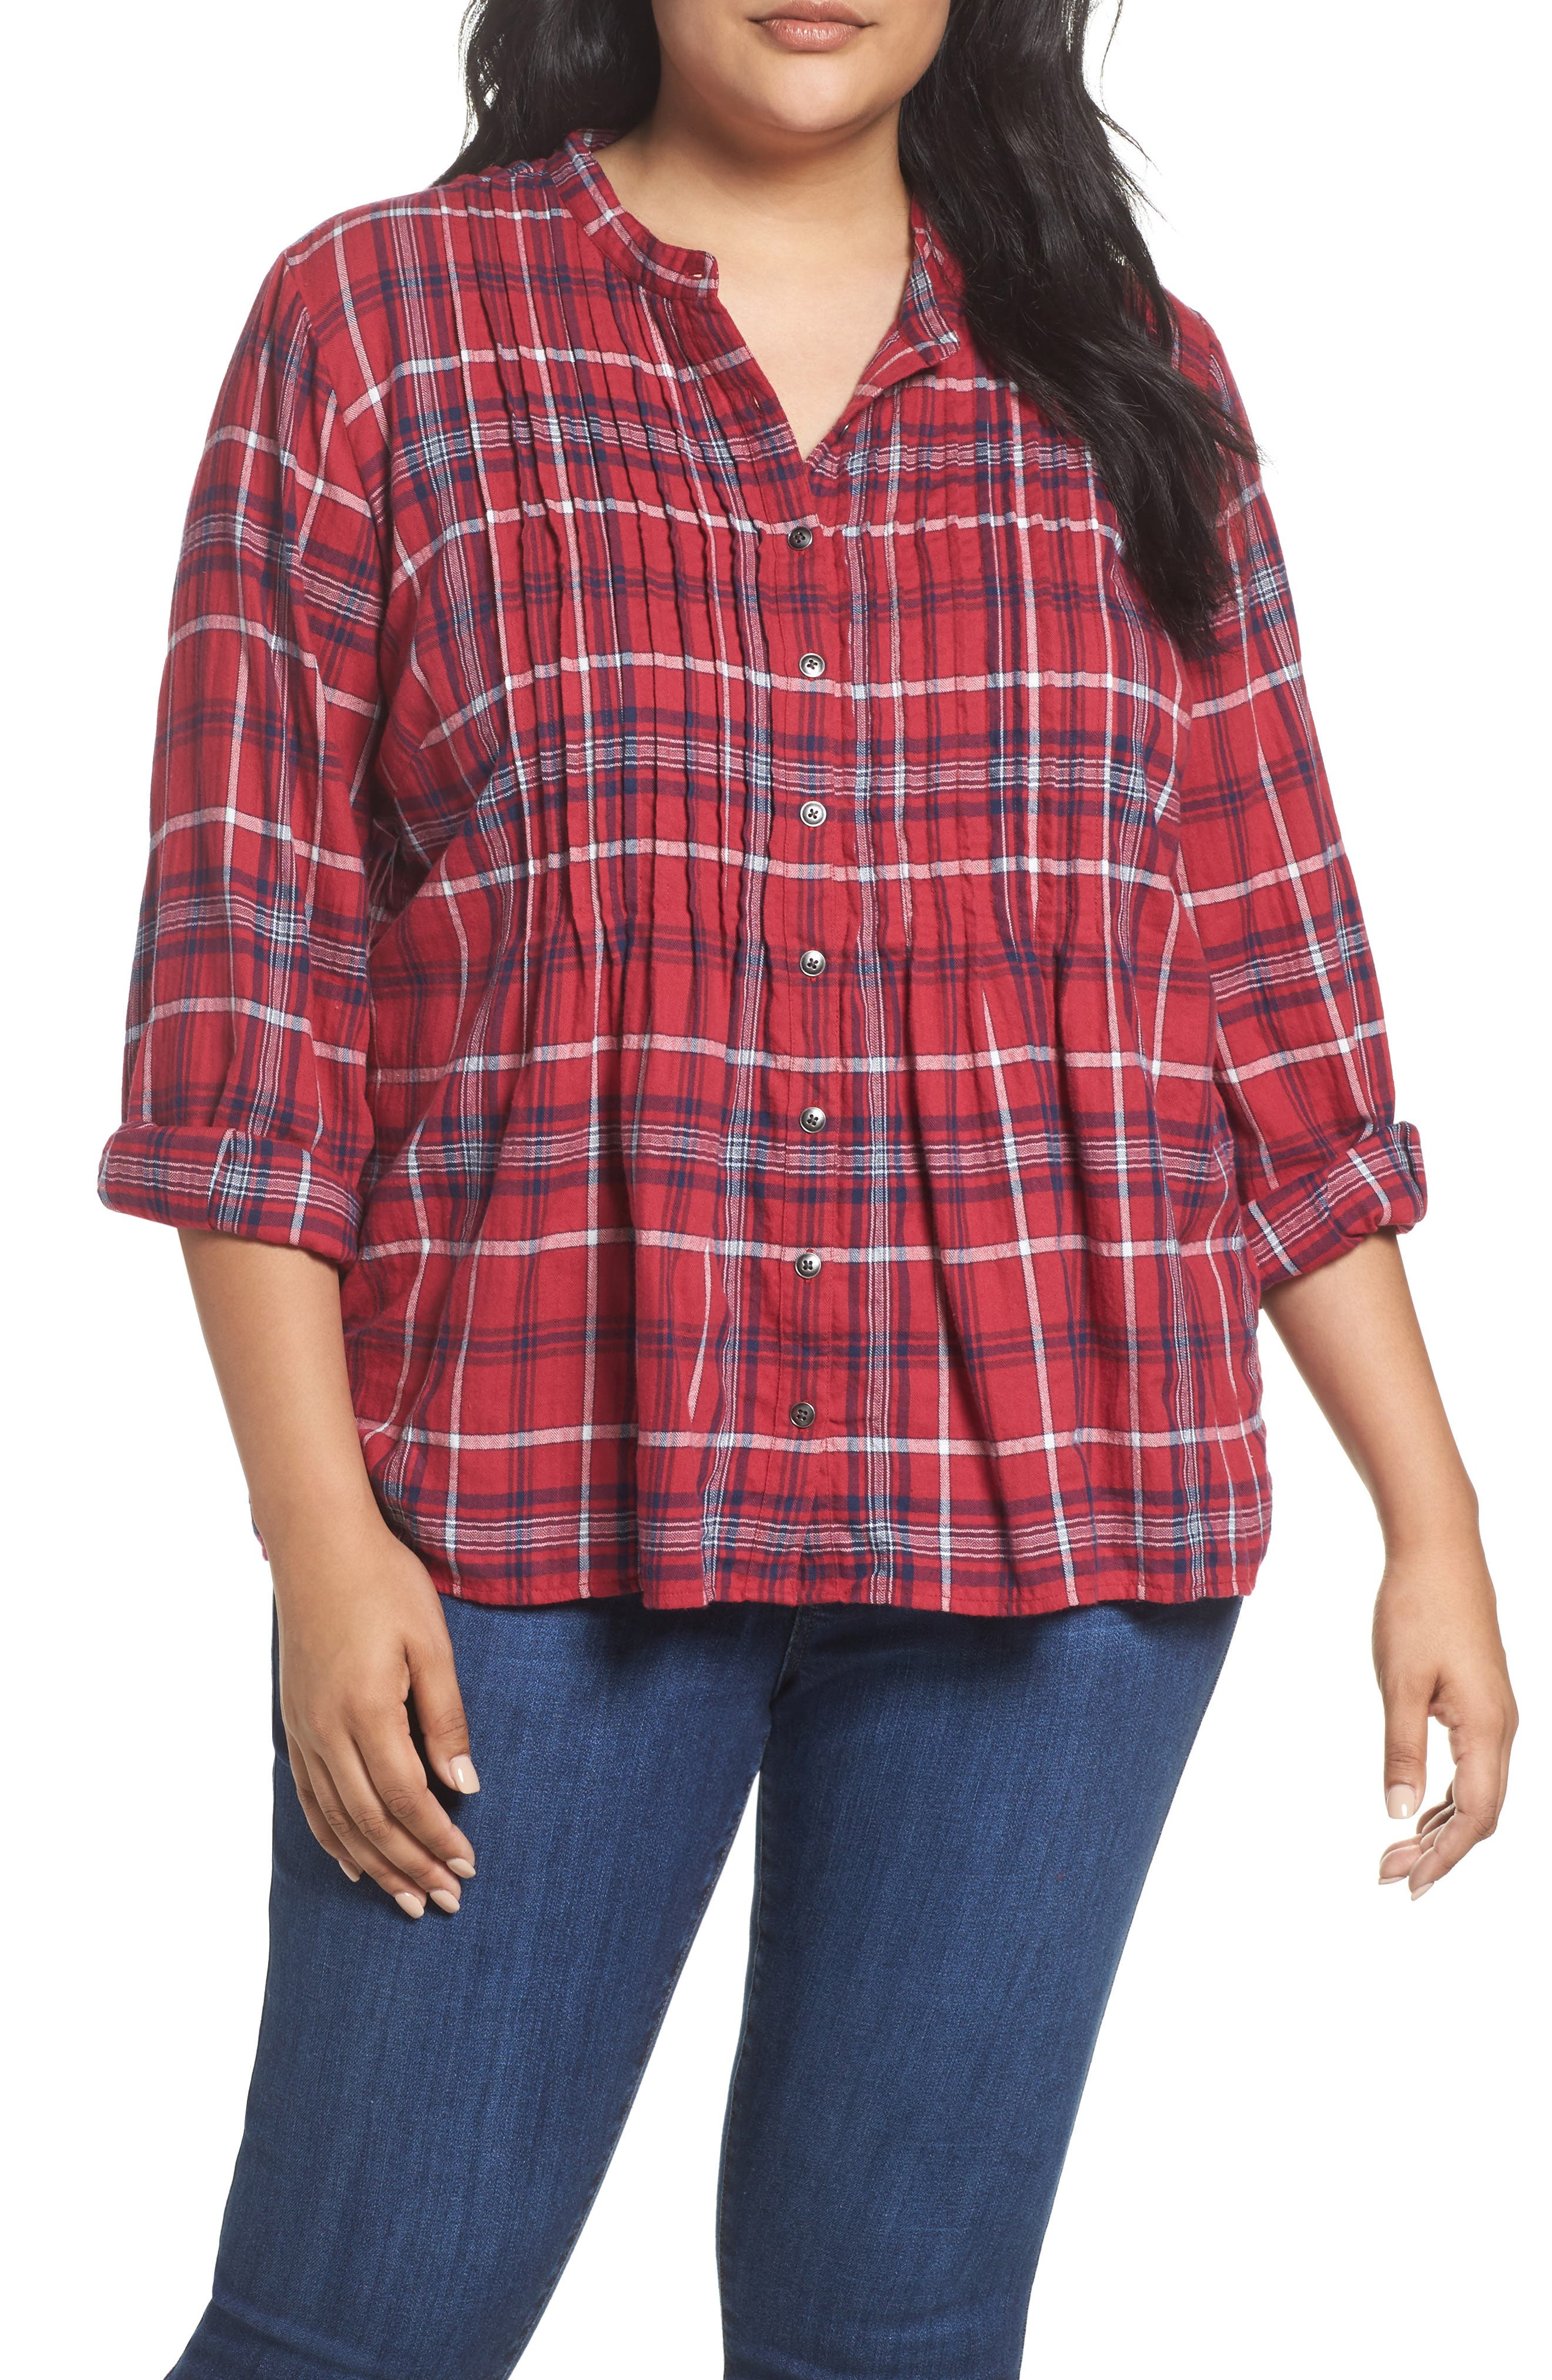 Pintuck Pleat Blouse,                         Main,                         color, Red- Ivory Plaid